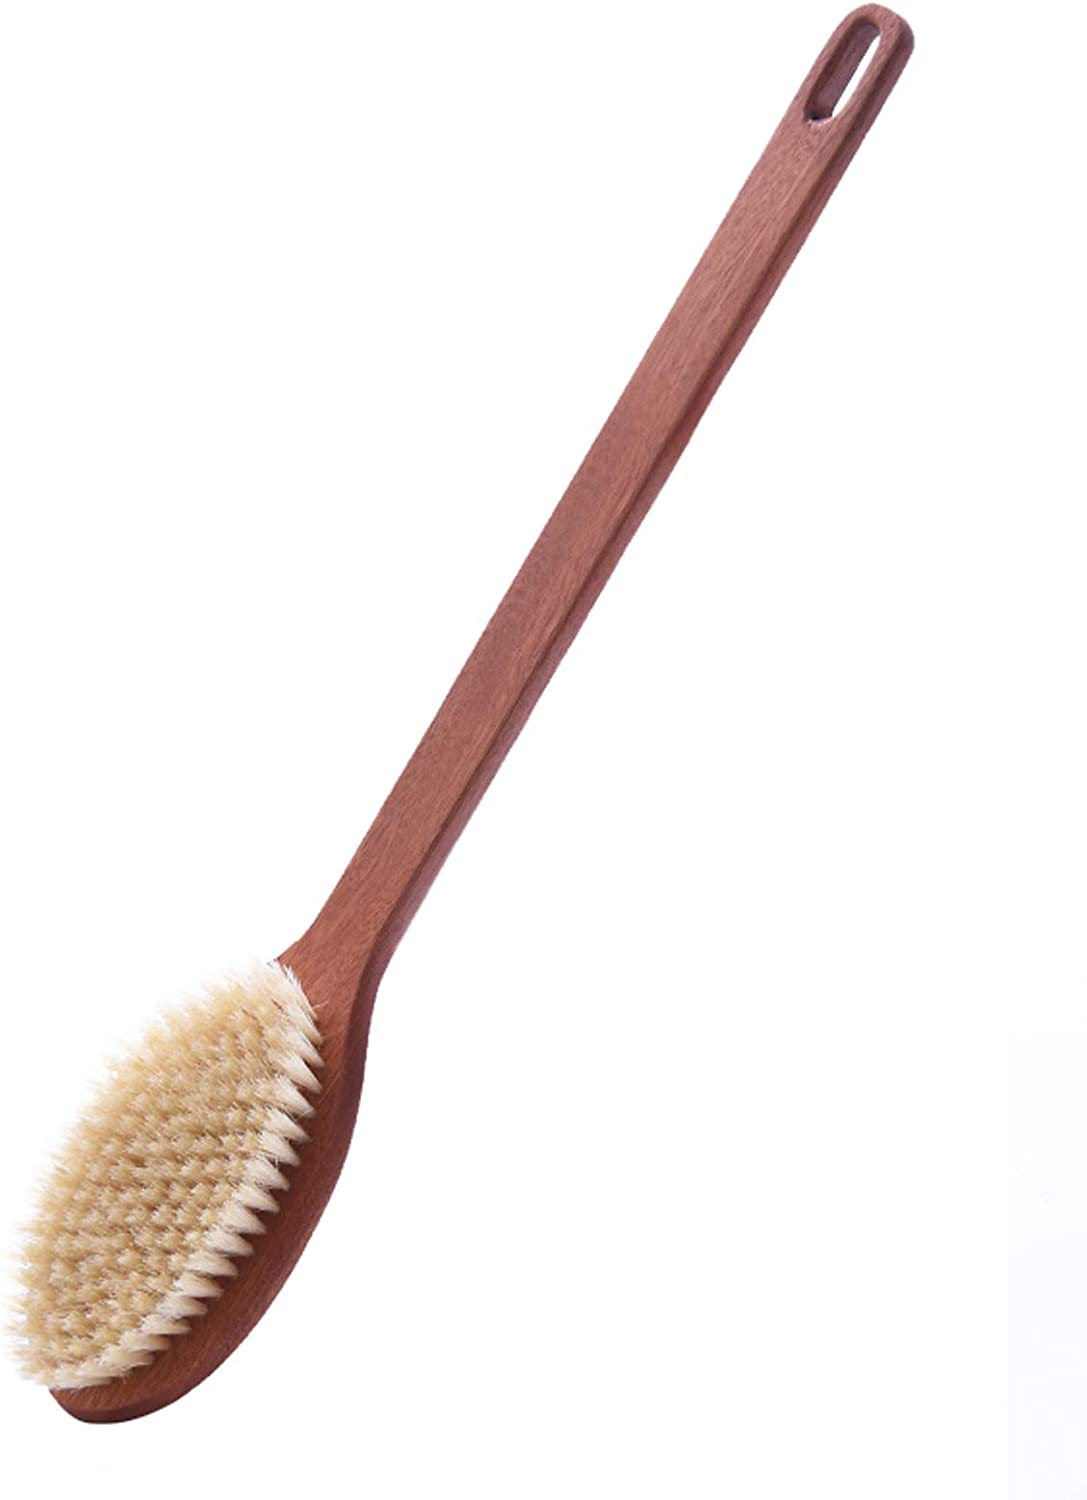 klm All items free shipping Shower Brush ,Can Be Used Dry store The for Brush. Wet and